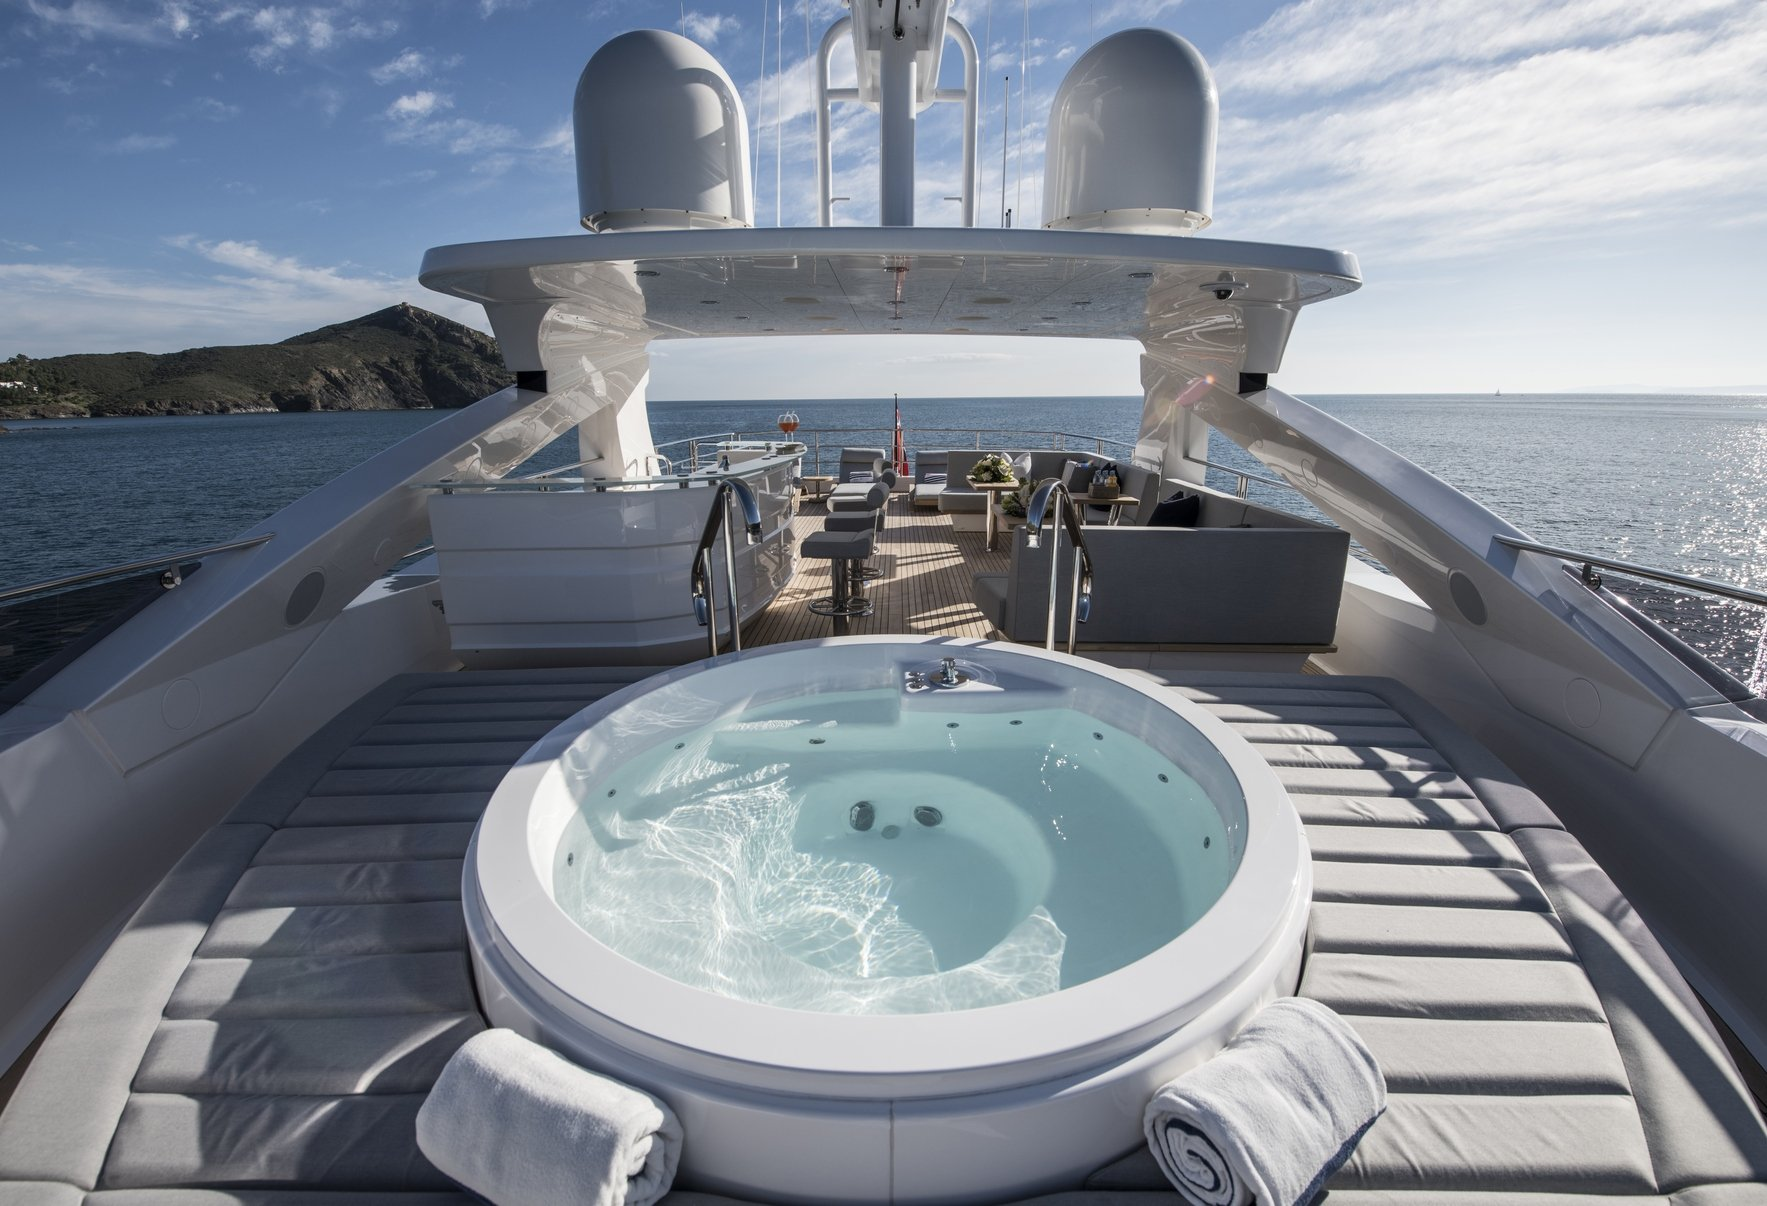 BERCO VOYAGER Jacuzzi